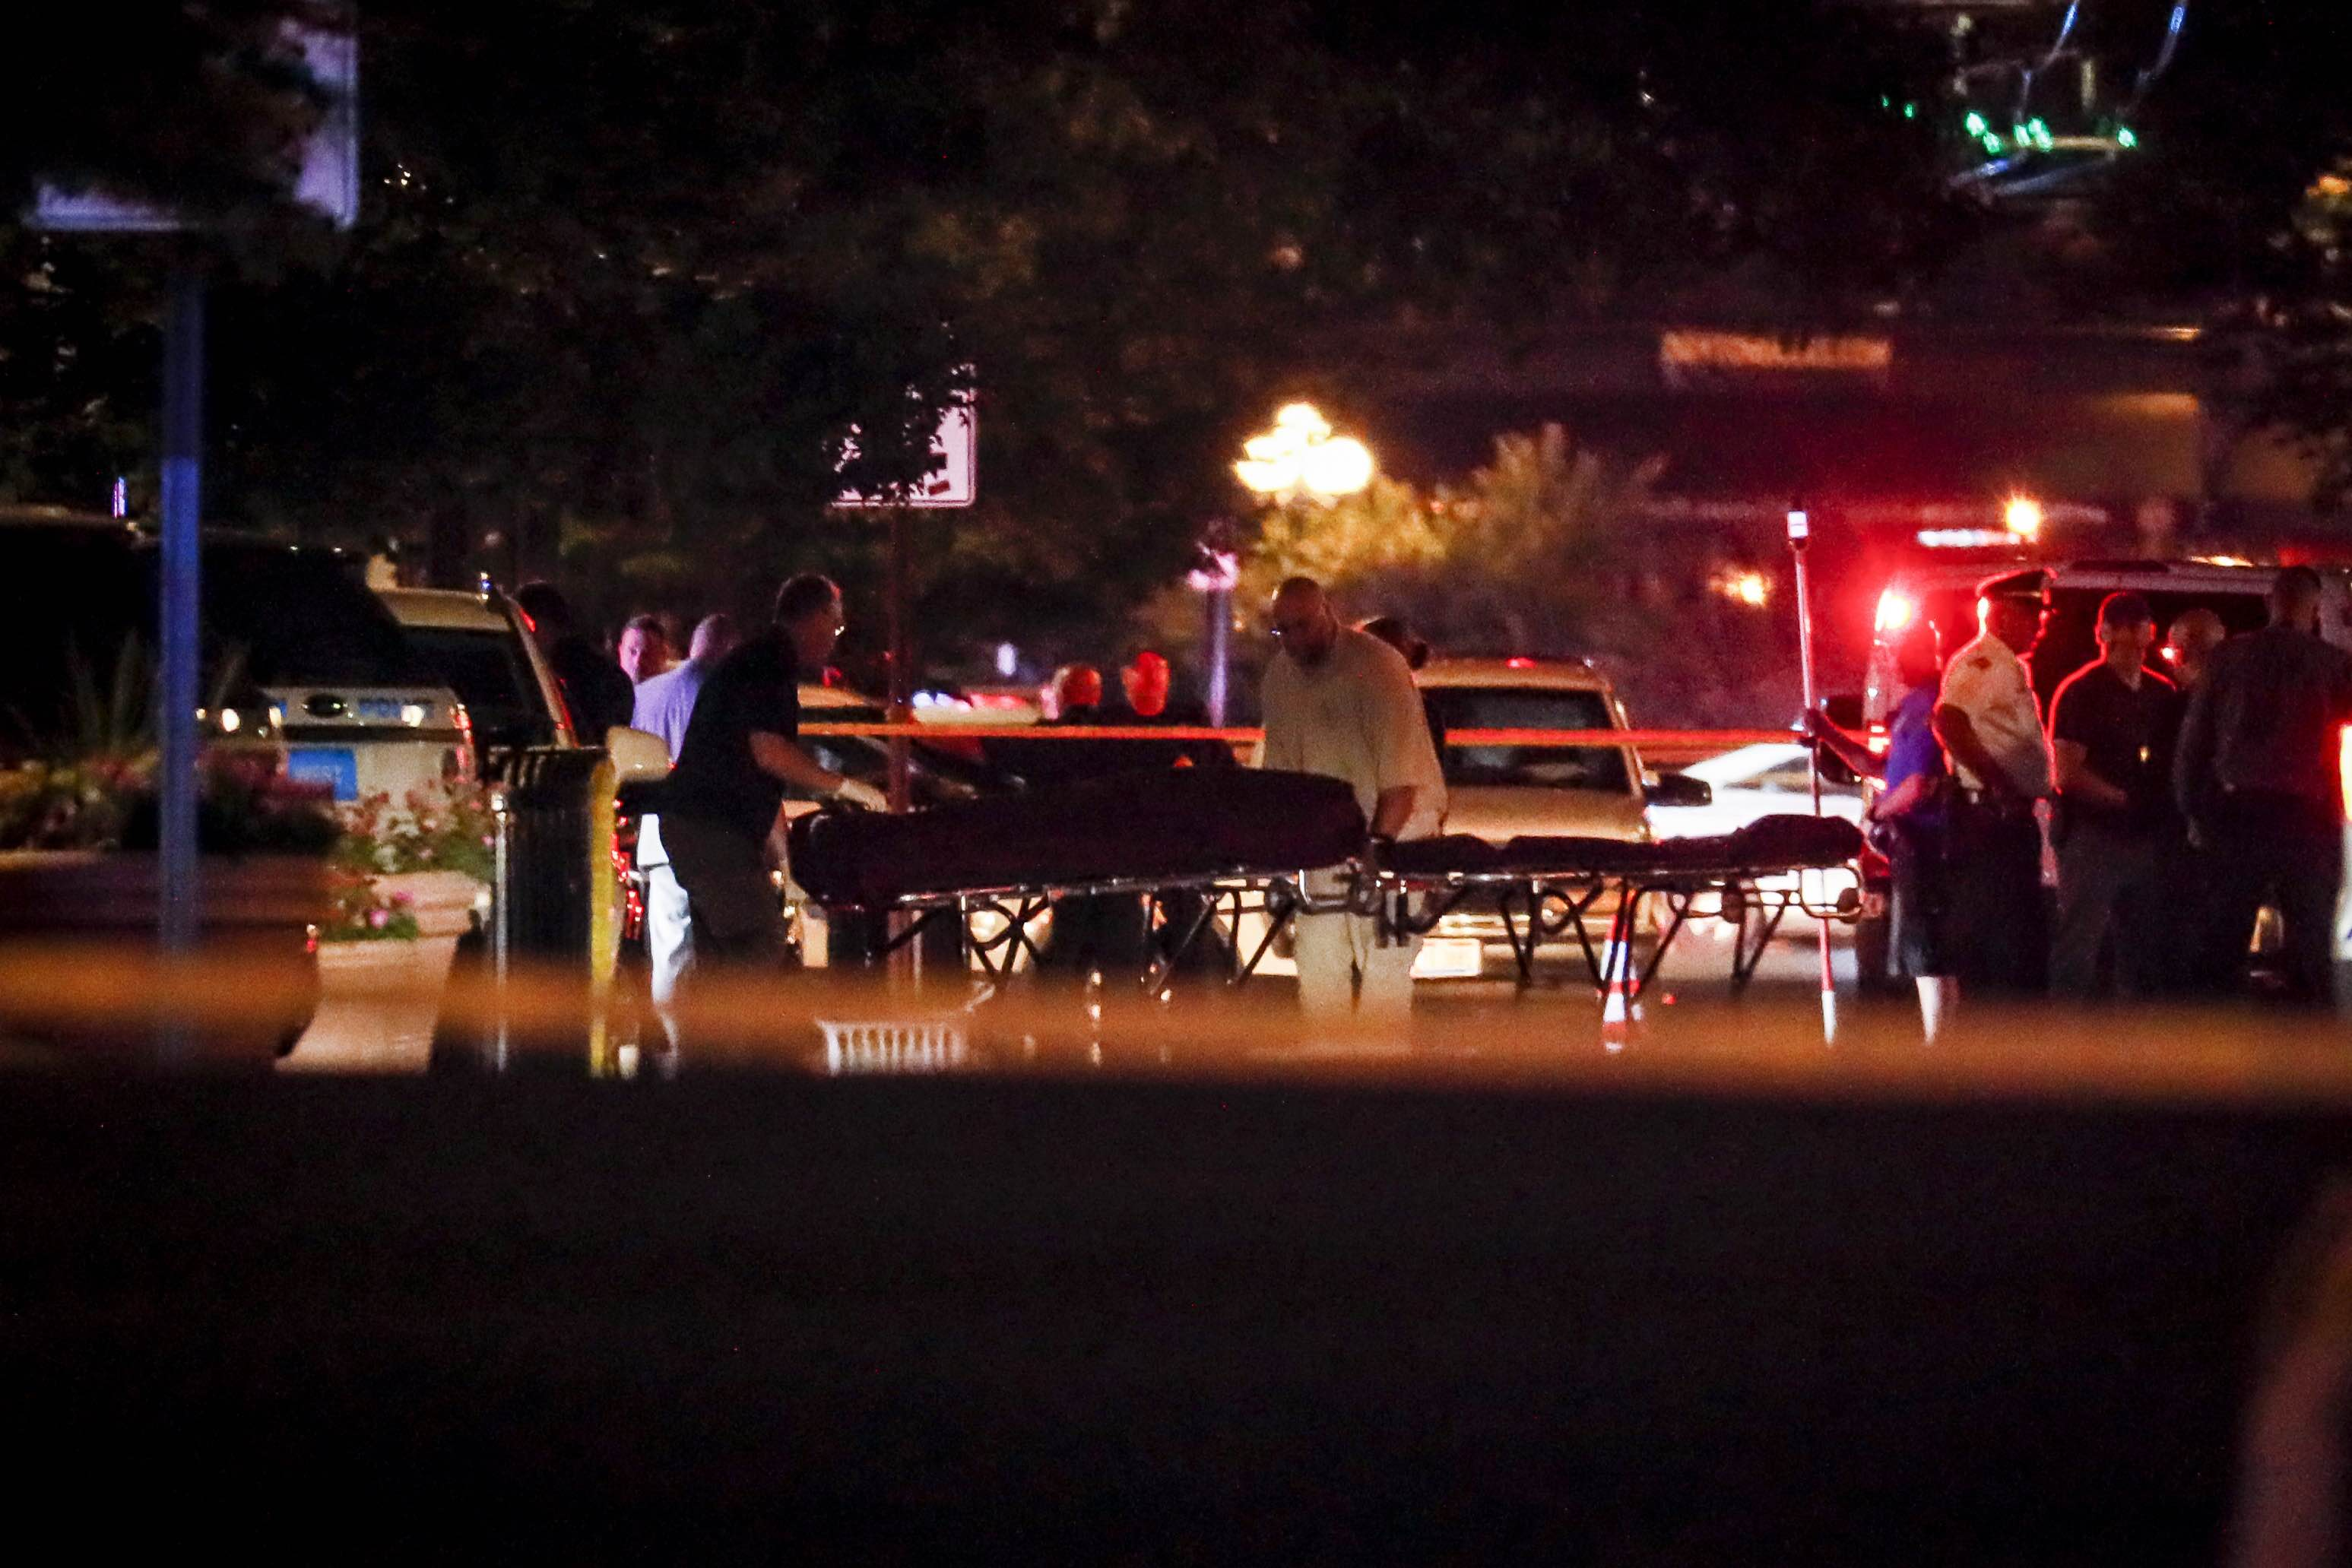 Bodies are removed from at the scene of a mass shooting, Sunday, Aug. 4, 2019, in Dayton, Ohio. (AP Photo/John Minchillo)